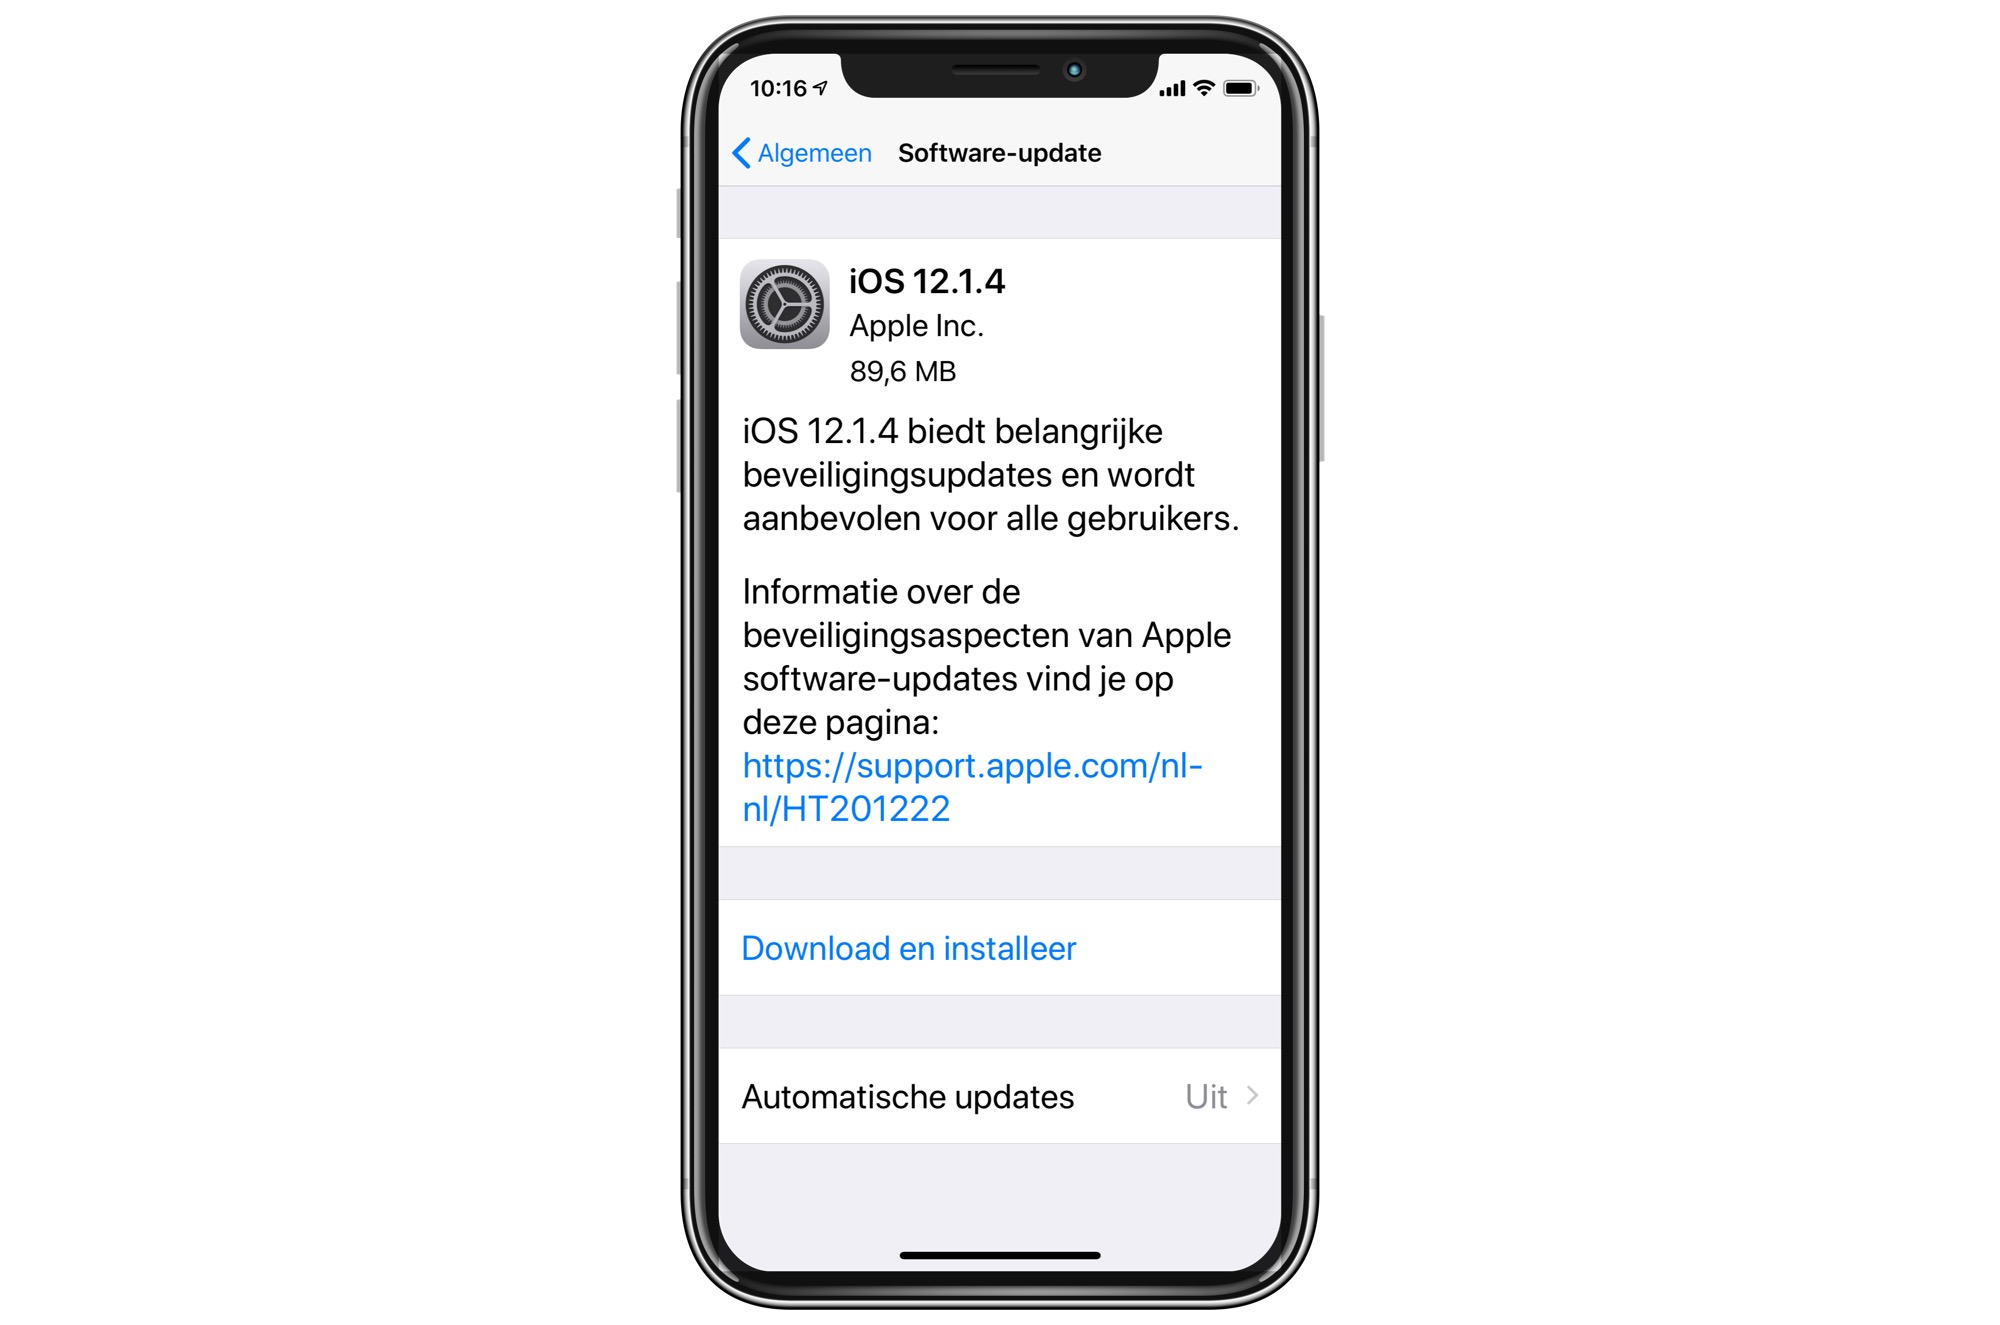 https://www.macfreak.nl/modules/news/images/zArt.iOS12.1.4-update.jpeg